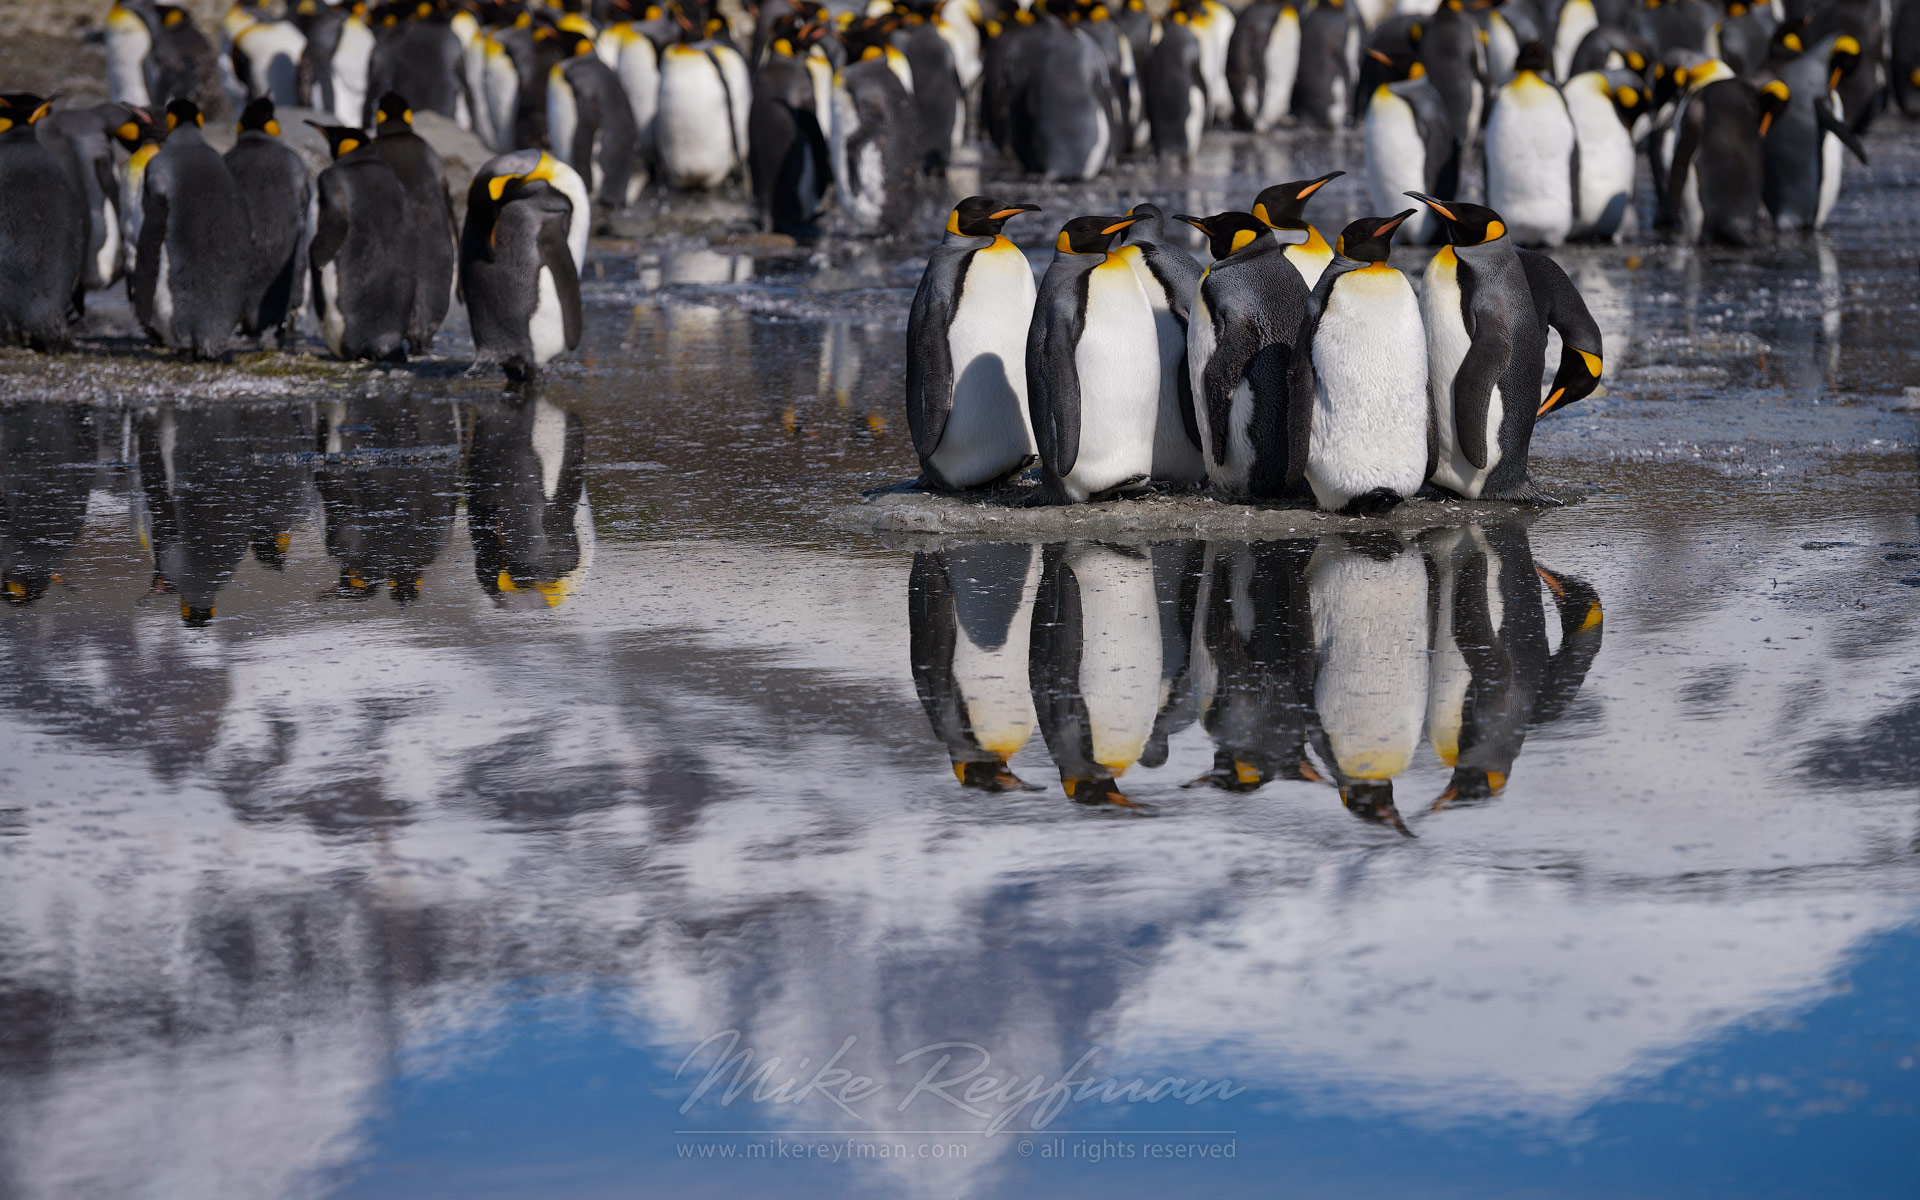 King Penguin (Aptenodytes patagonicus) Colony, Saint Andrew's Bay, South Georgia, Sub-Antarctic - King-Penguins-South-Georgia-Sub-Antarctic - Mike Reyfman Photography